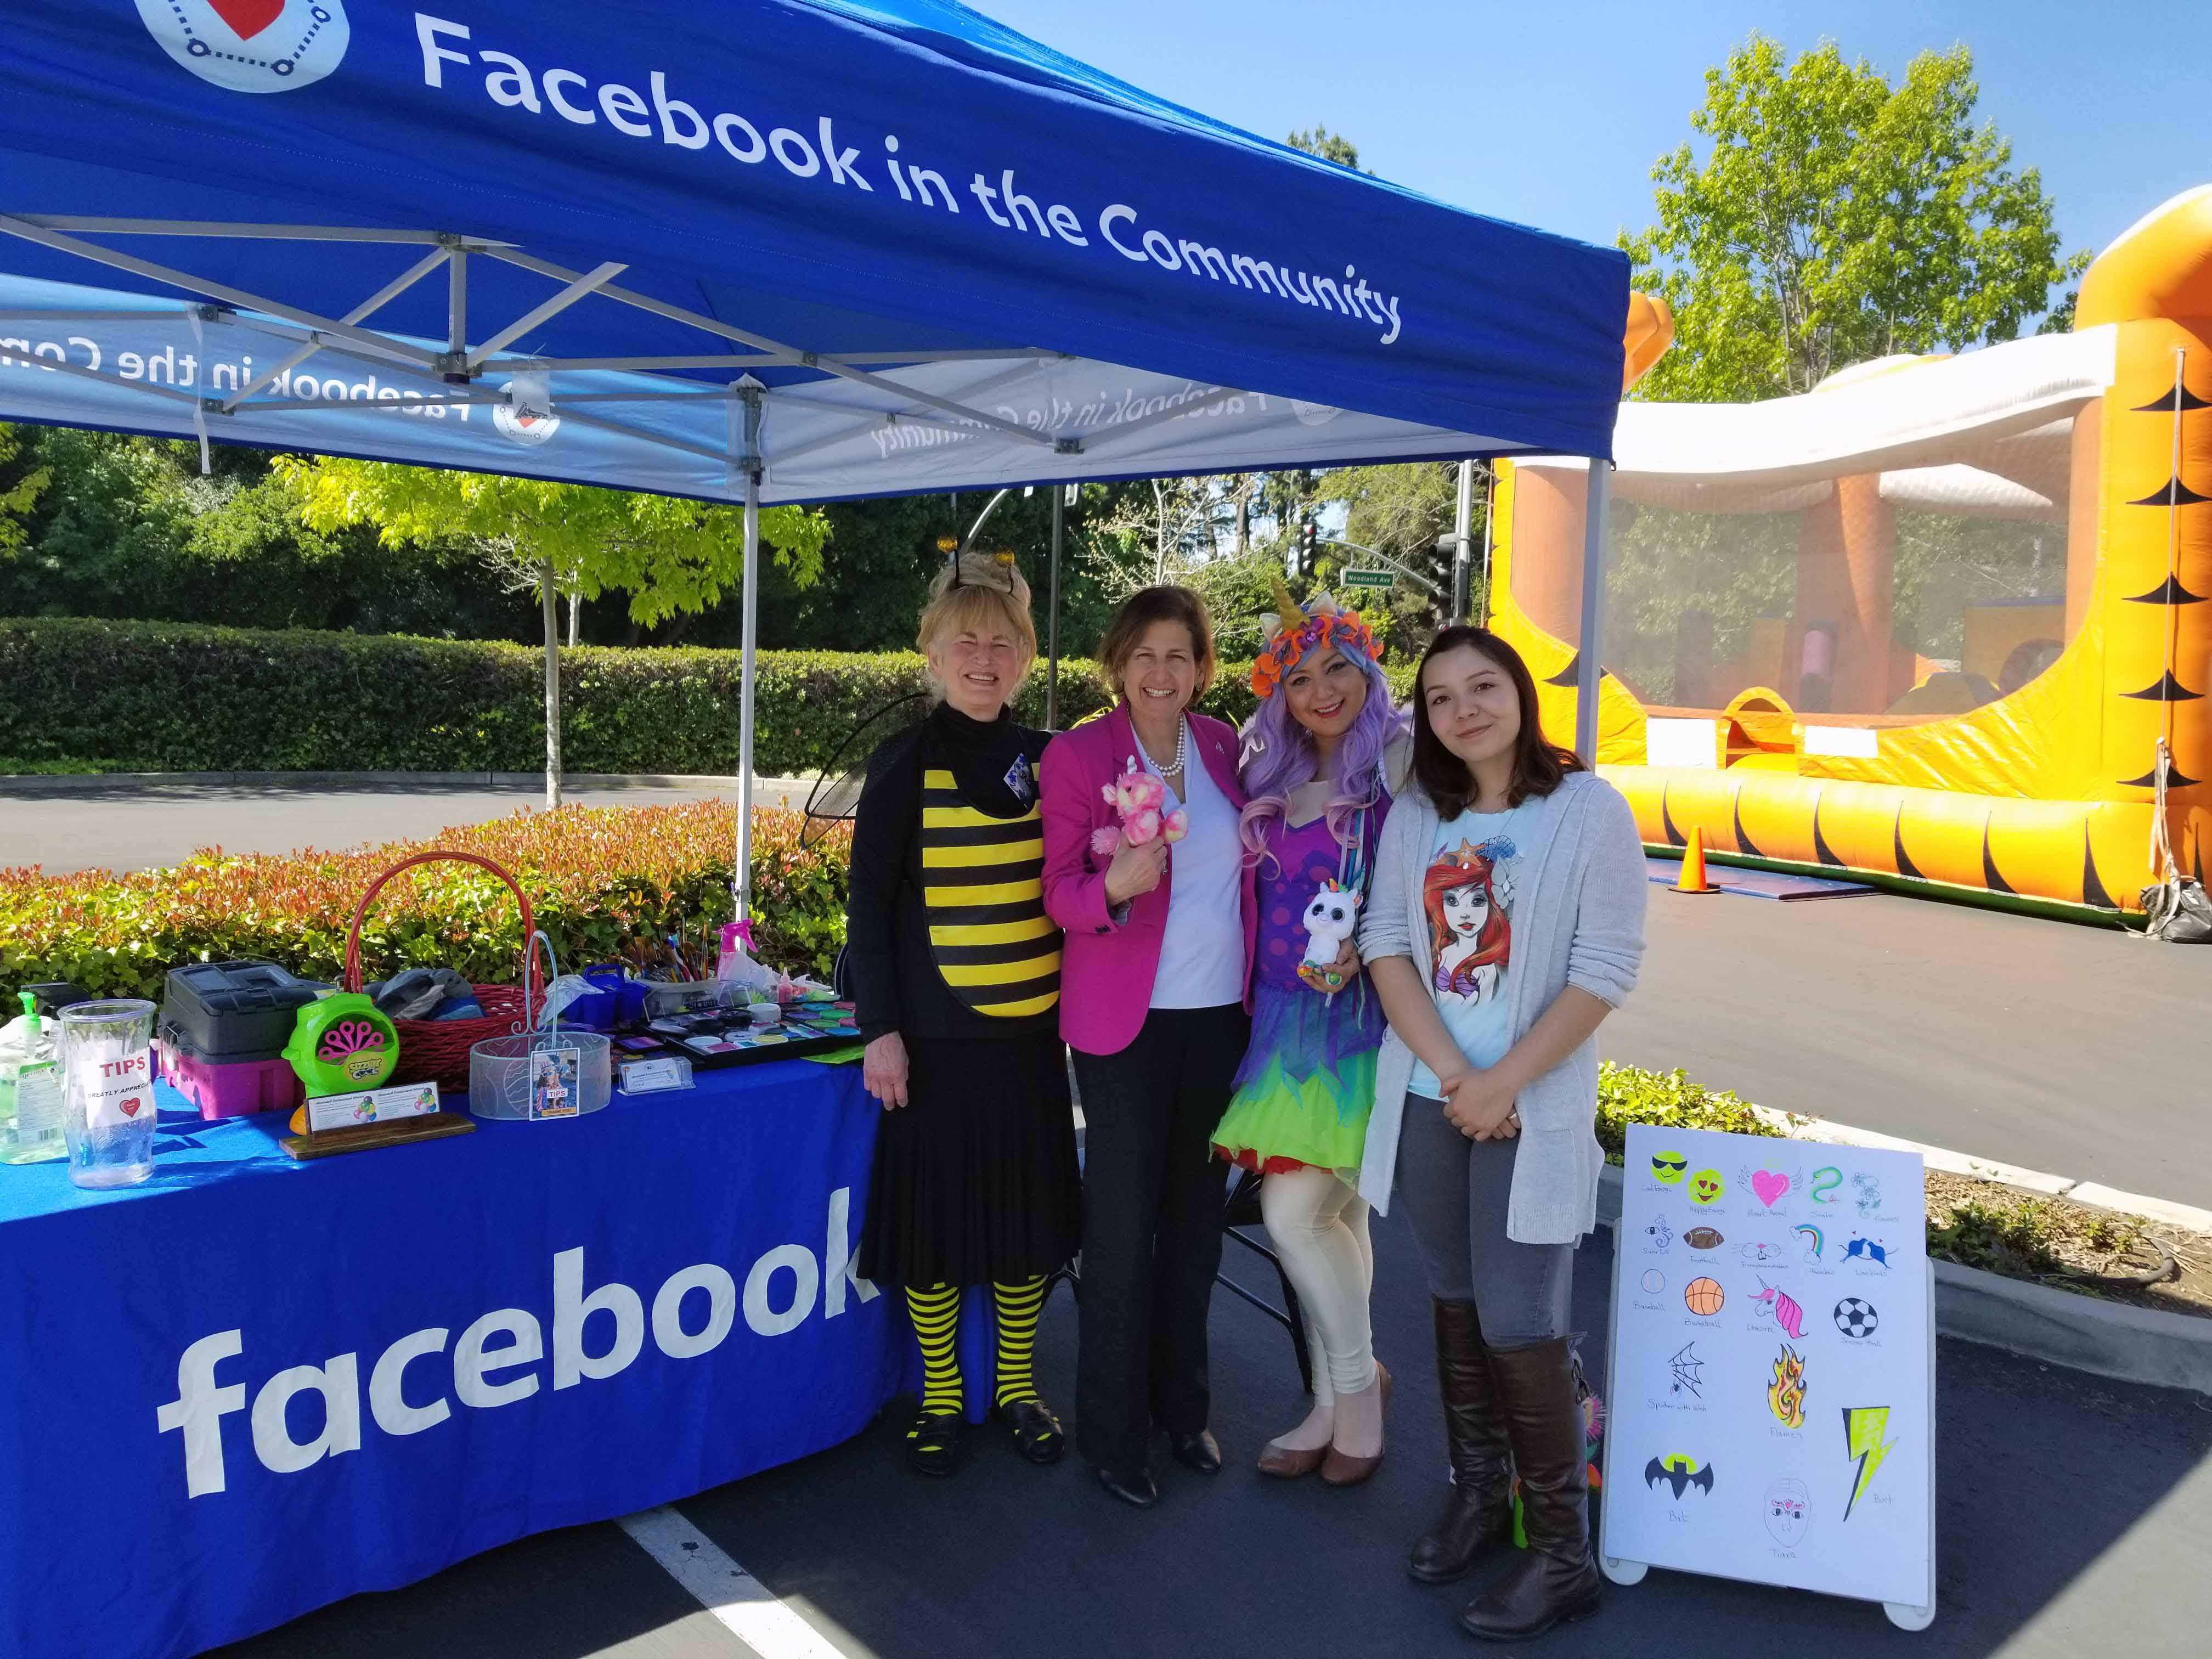 Taken with fellow face painters and Mayor of Millbrae at April 2018 Facebook Community Festival